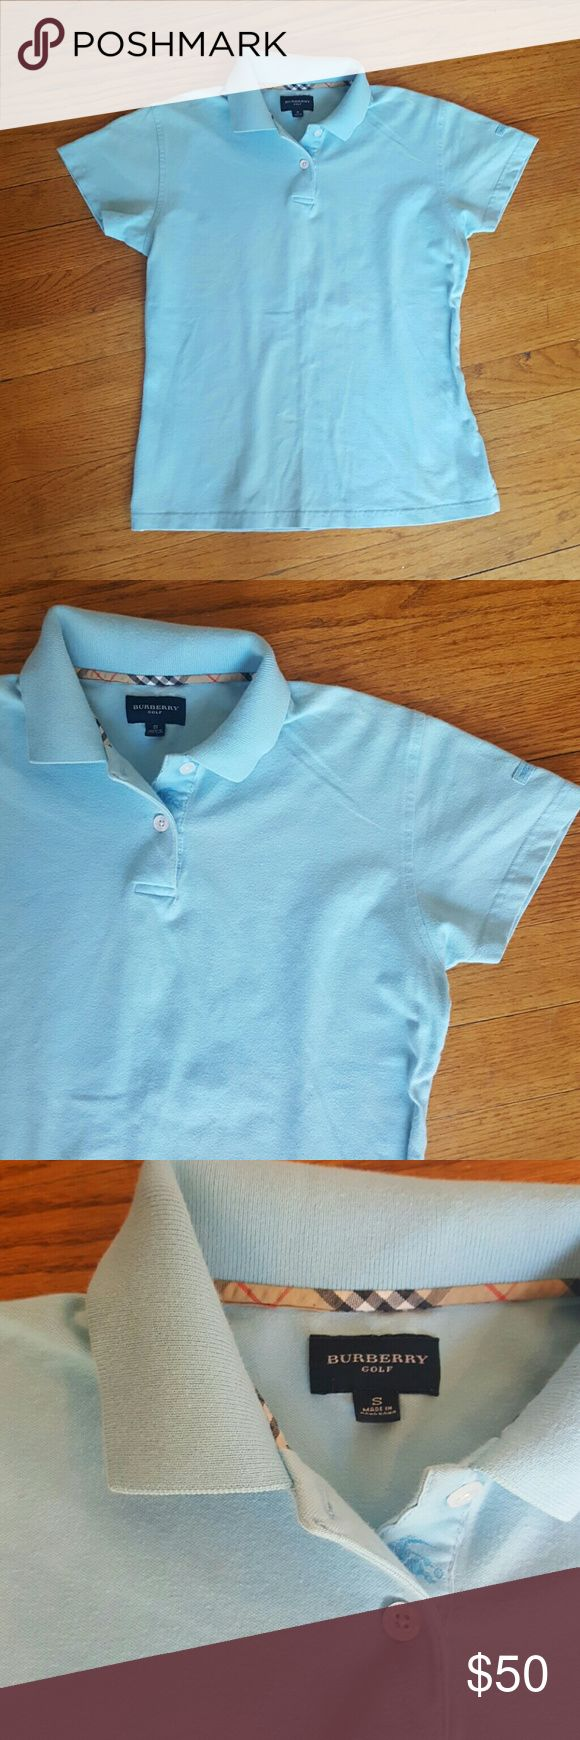 WOMENS BURBERRY POLO SHIRT BLUE SIZE SMALL BURBERRY GOLF LIGHT BLUE POLO SHIRT GUC WOMENS T SHIRT Burberry Tops Tees - Short Sleeve